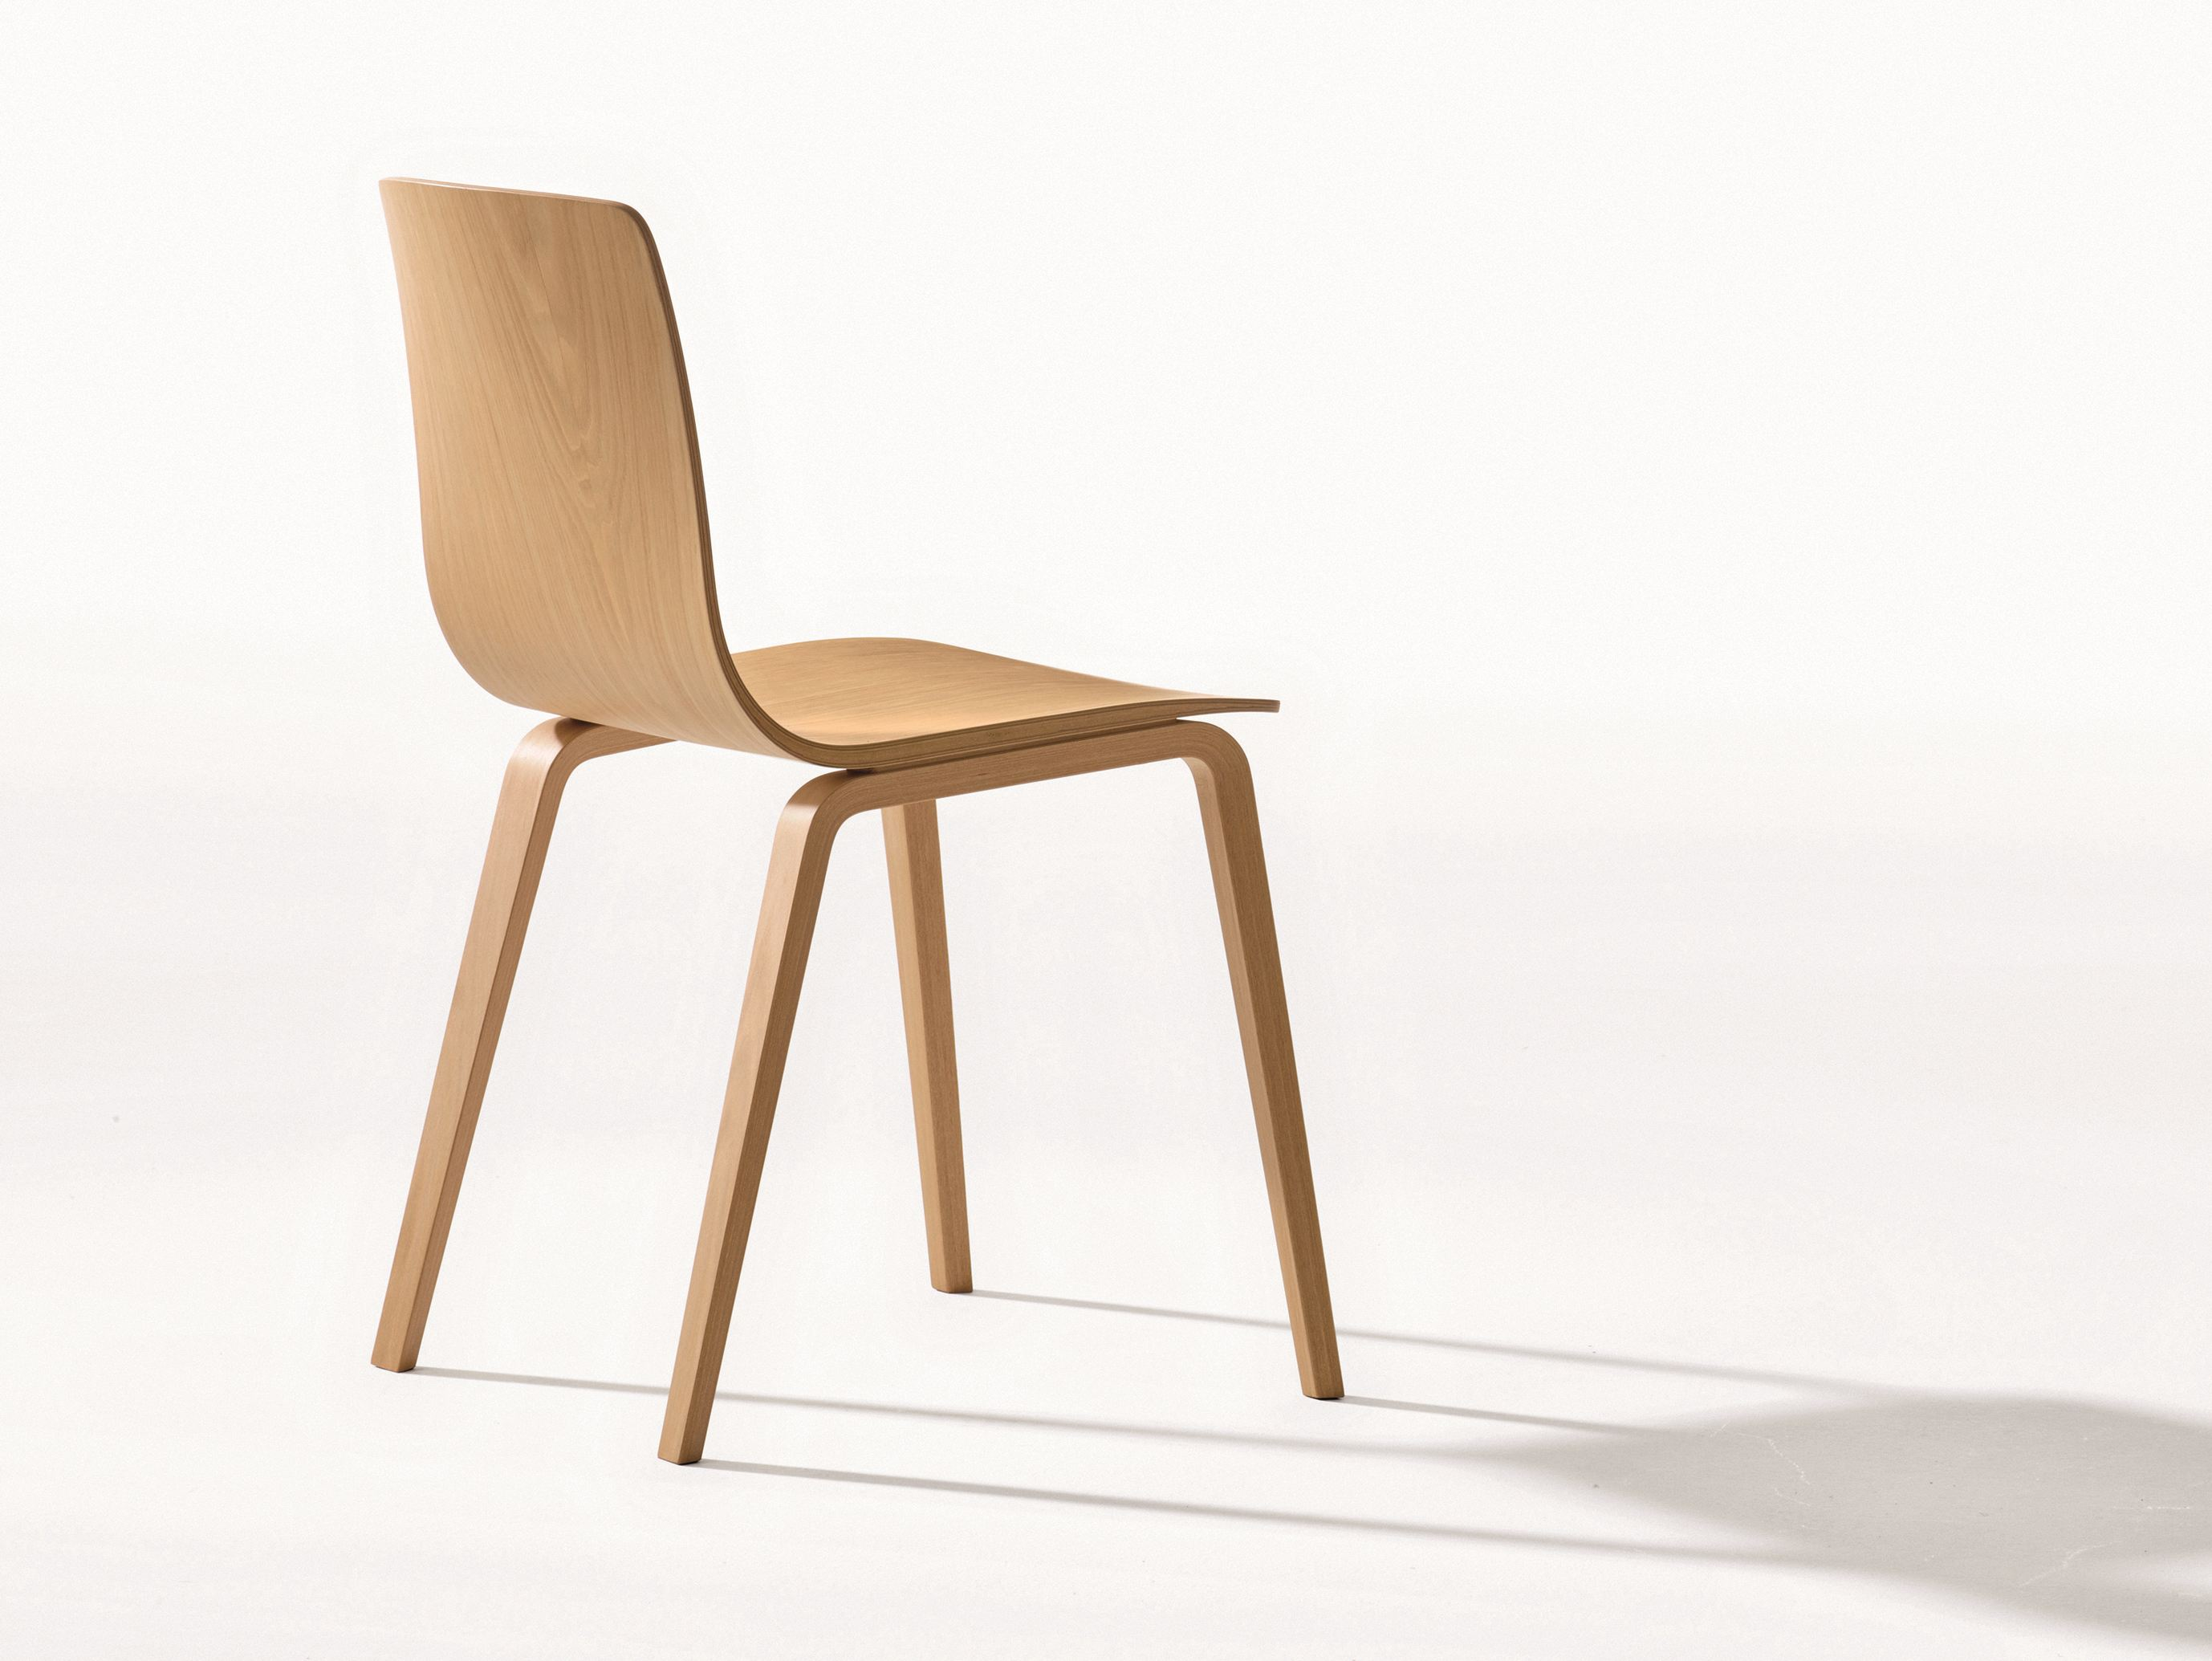 Aava chaise en bois by arper design antti kotilainen for Chaise en bois design